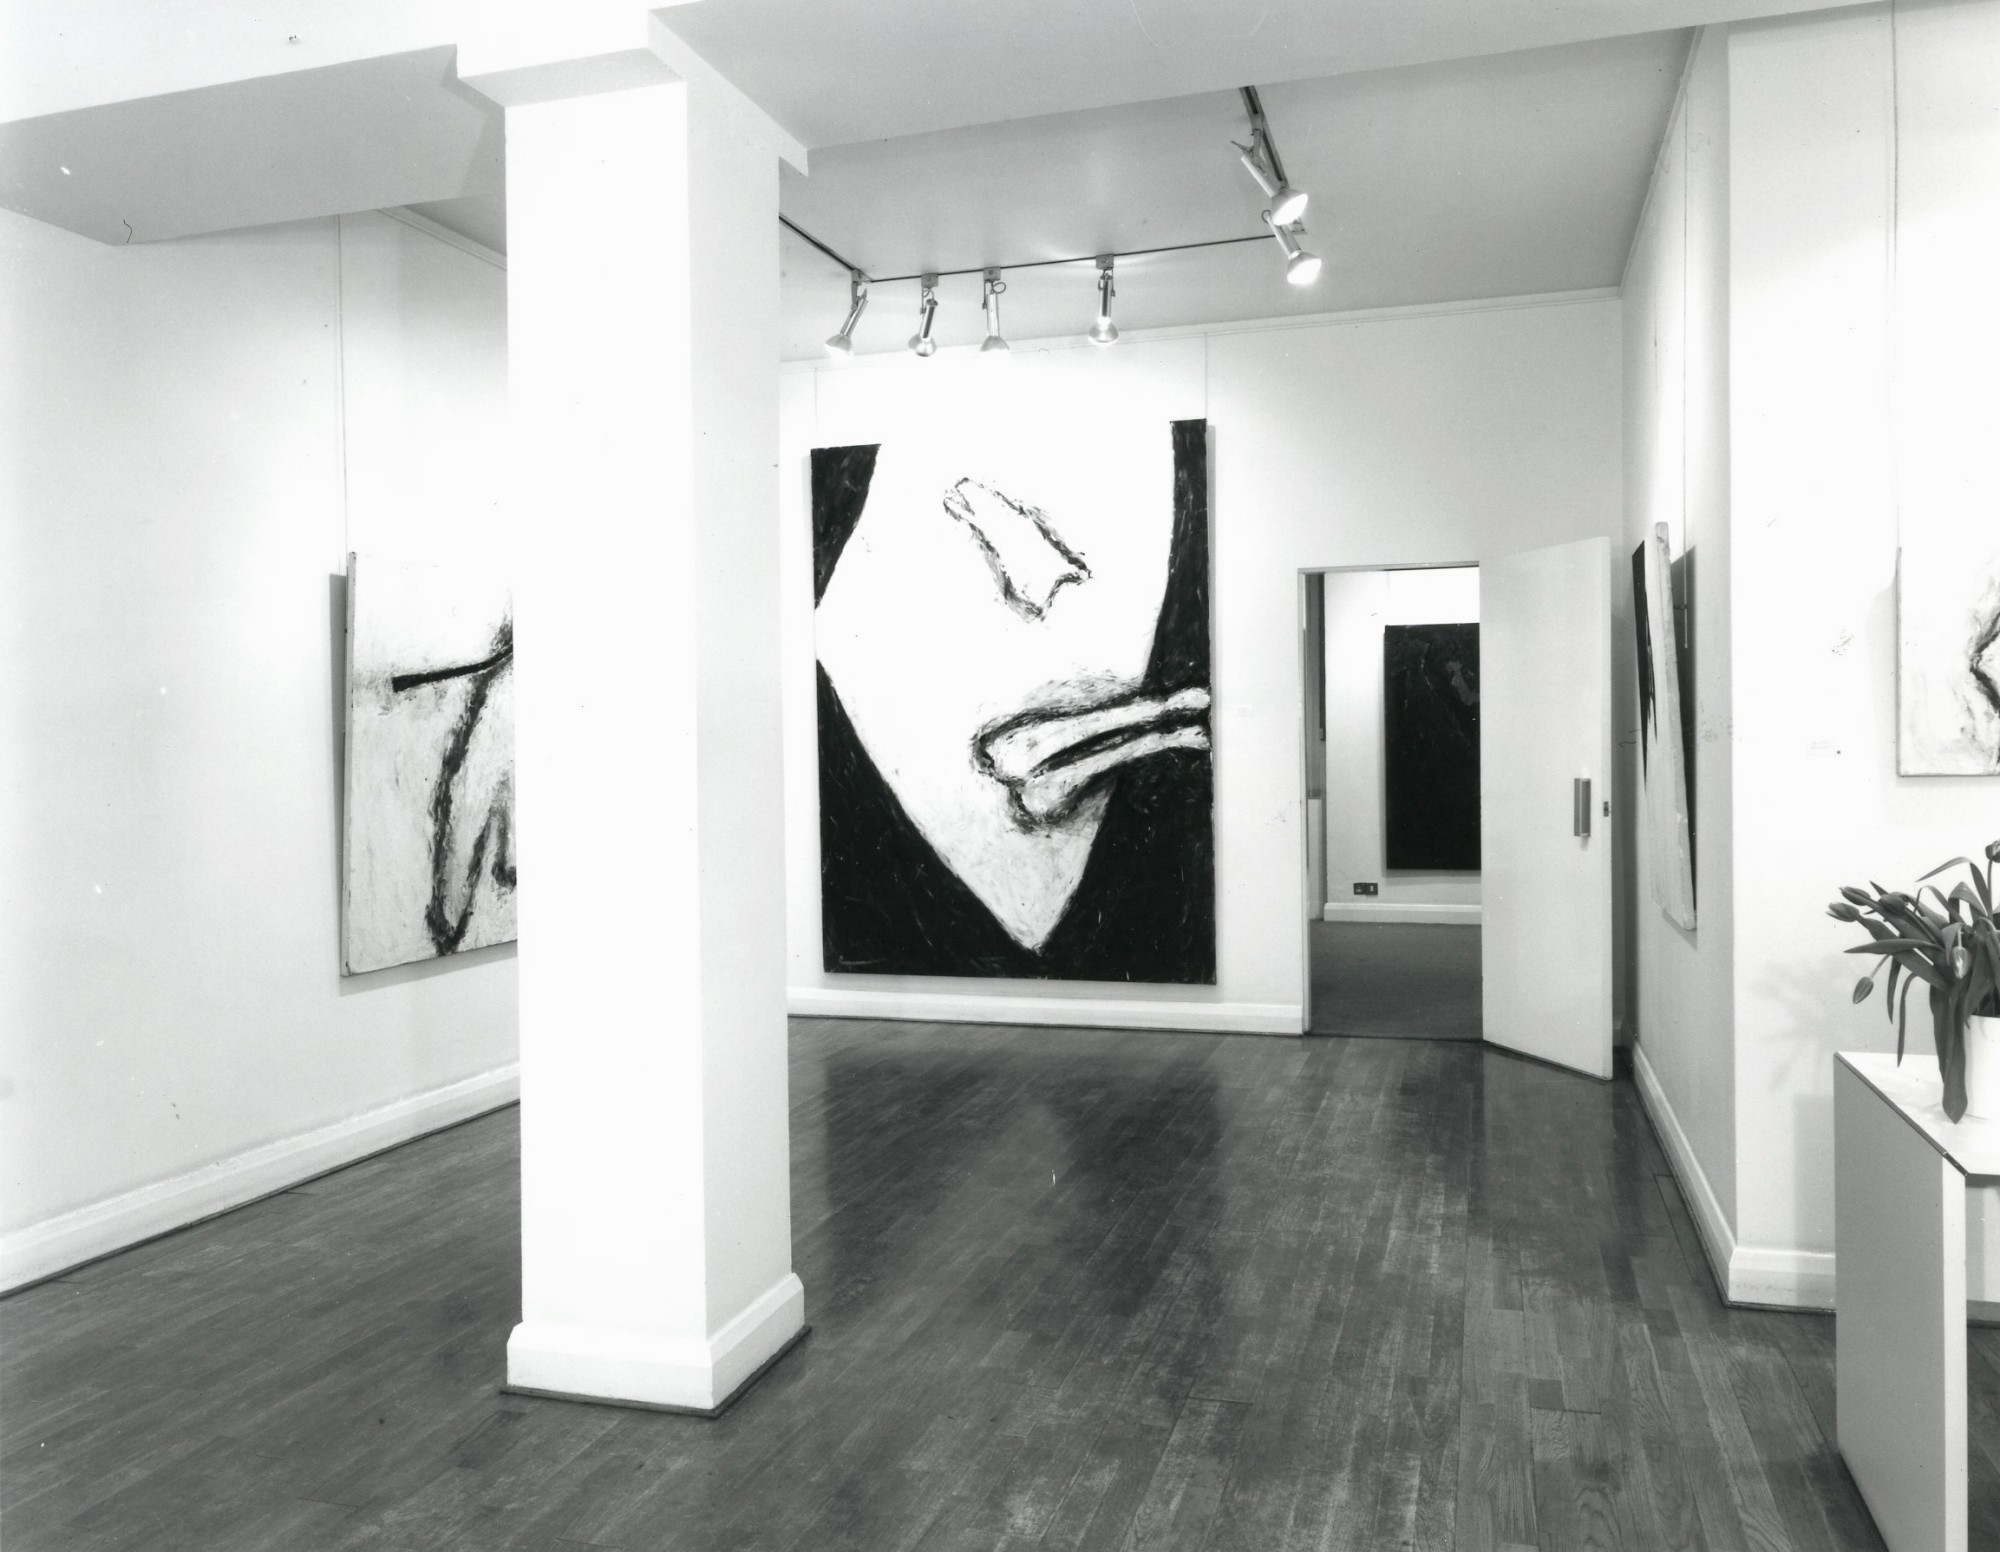 """<span class=""""link fancybox-details-link""""><a href=""""/exhibitions/297/works/image_standalone1487/"""">View Detail Page</a></span><p>SUSAN ROTHENBERG   RECENT PAINTINGS   12 FEB - 15 MAR 1980   Installation View</p>"""